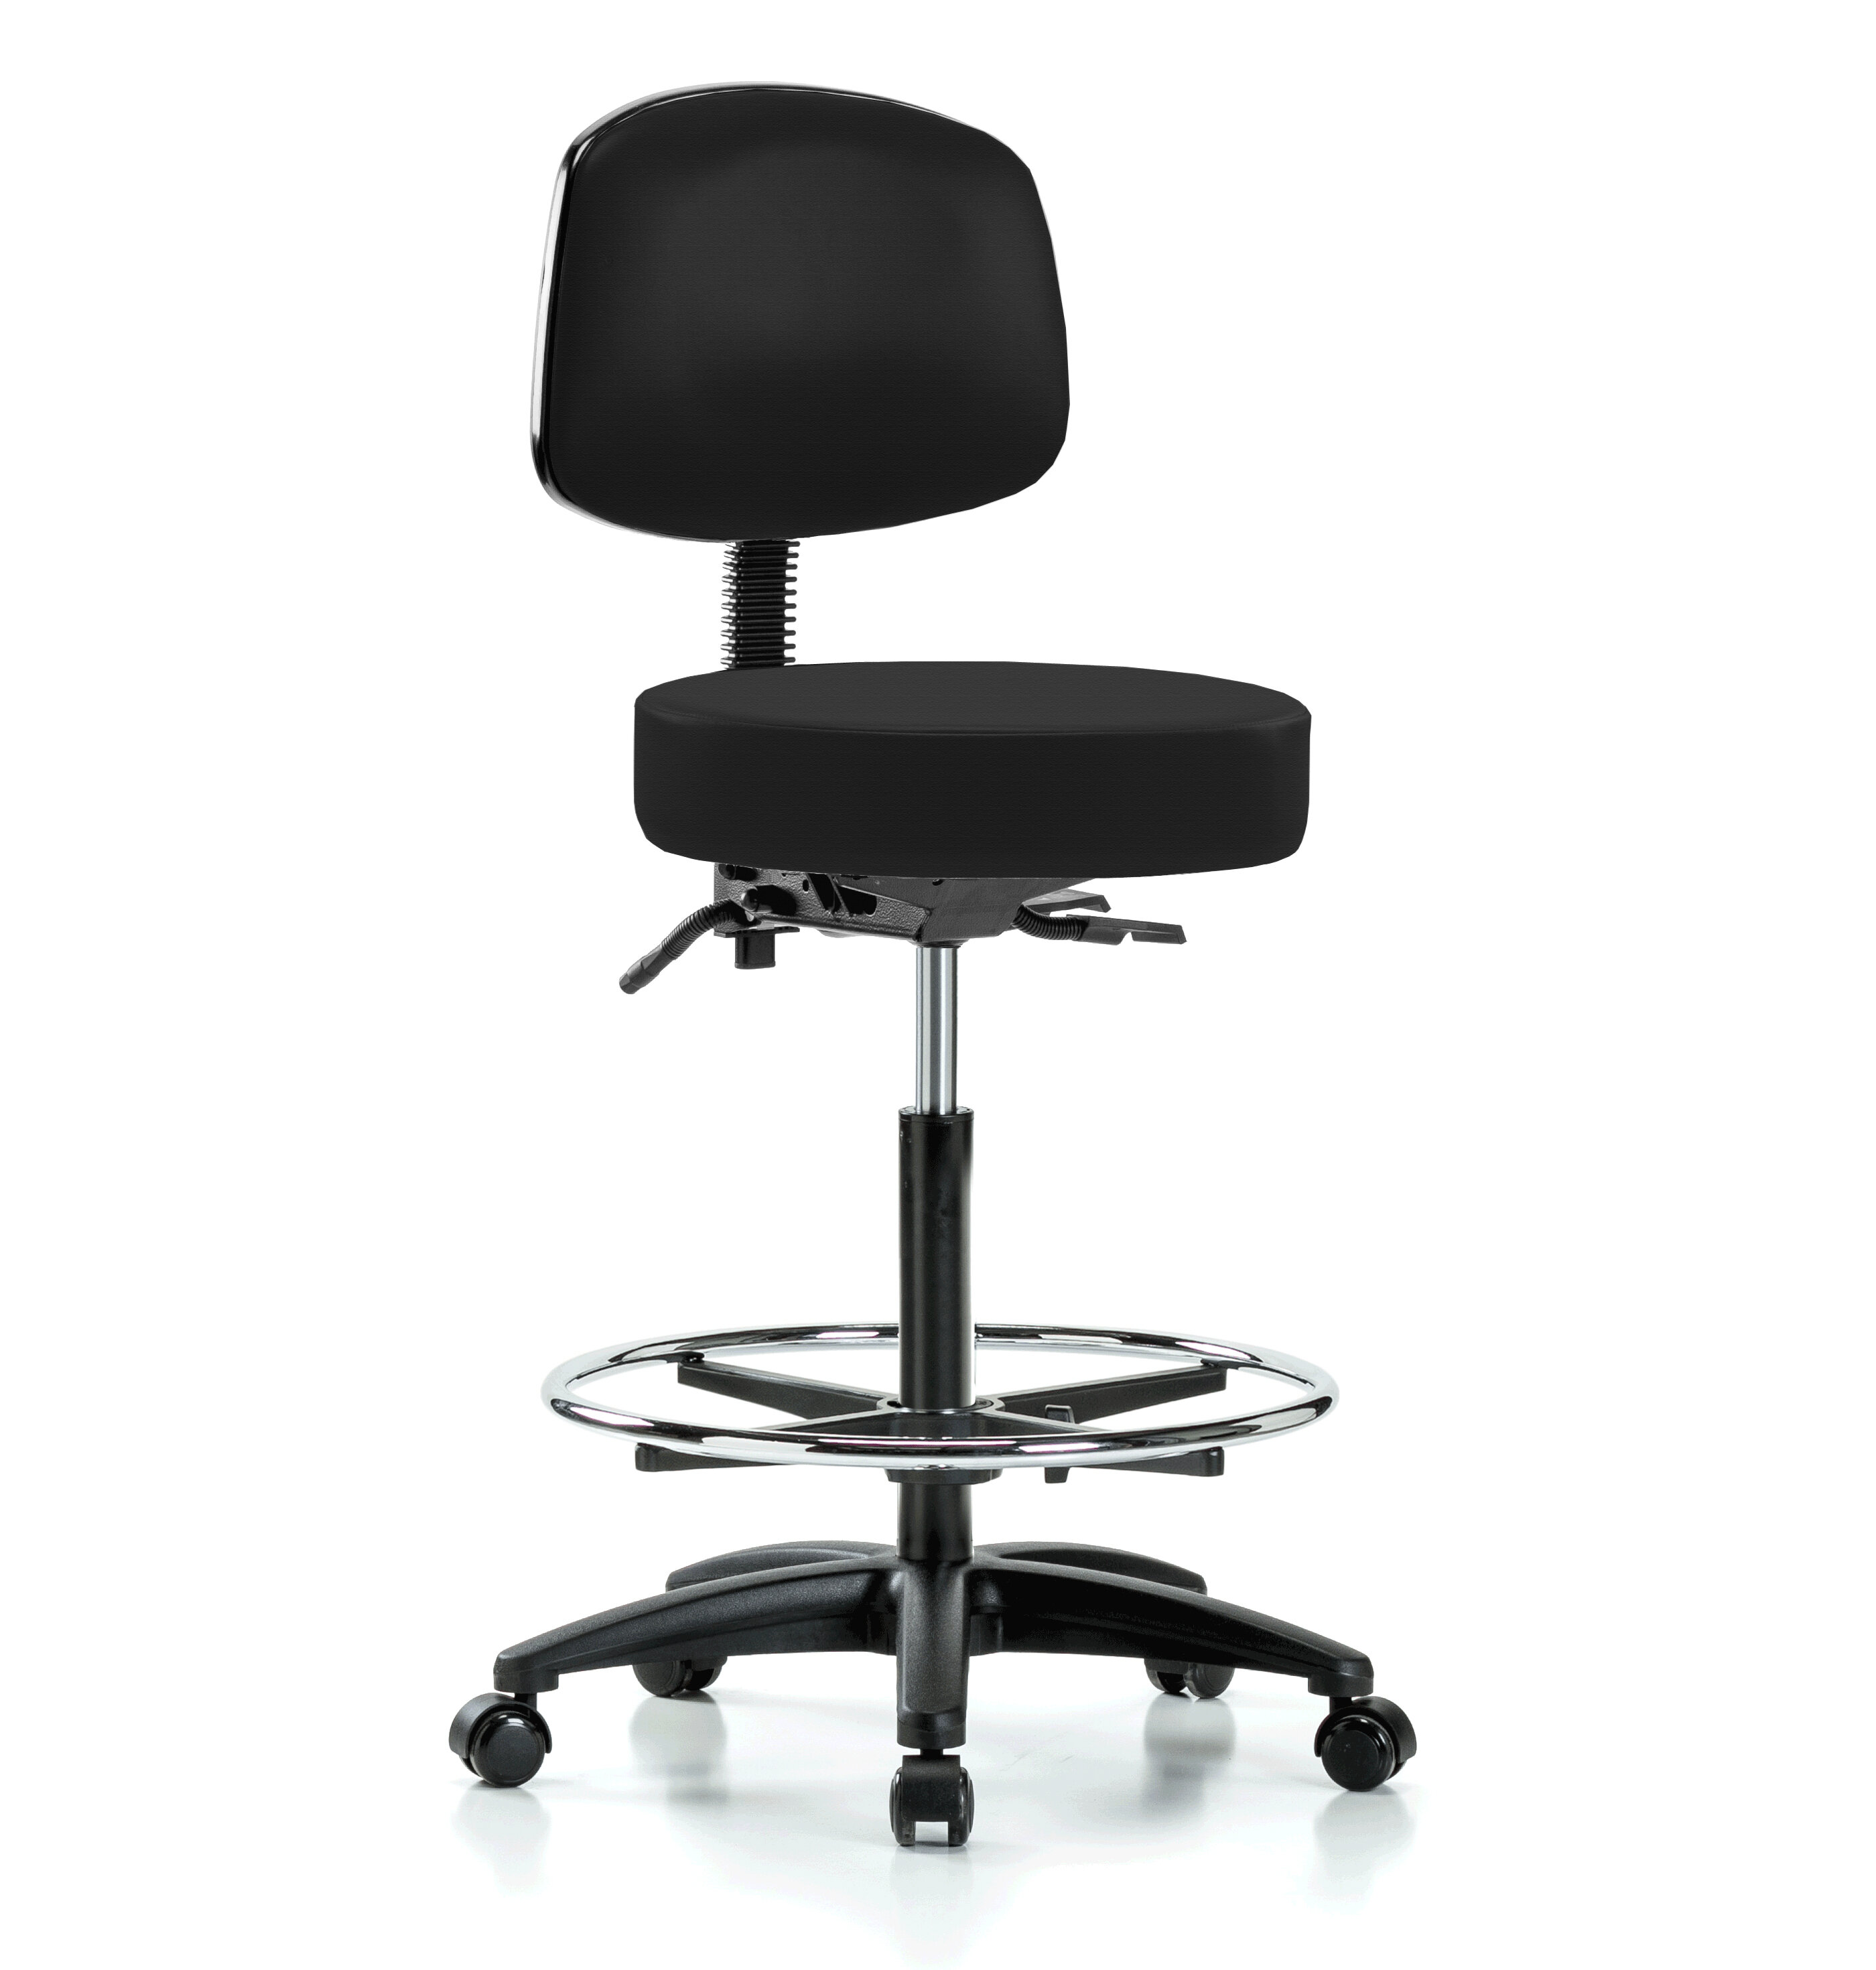 Admirable Height Adjustable Doctor Stool With Foot Ring Caraccident5 Cool Chair Designs And Ideas Caraccident5Info